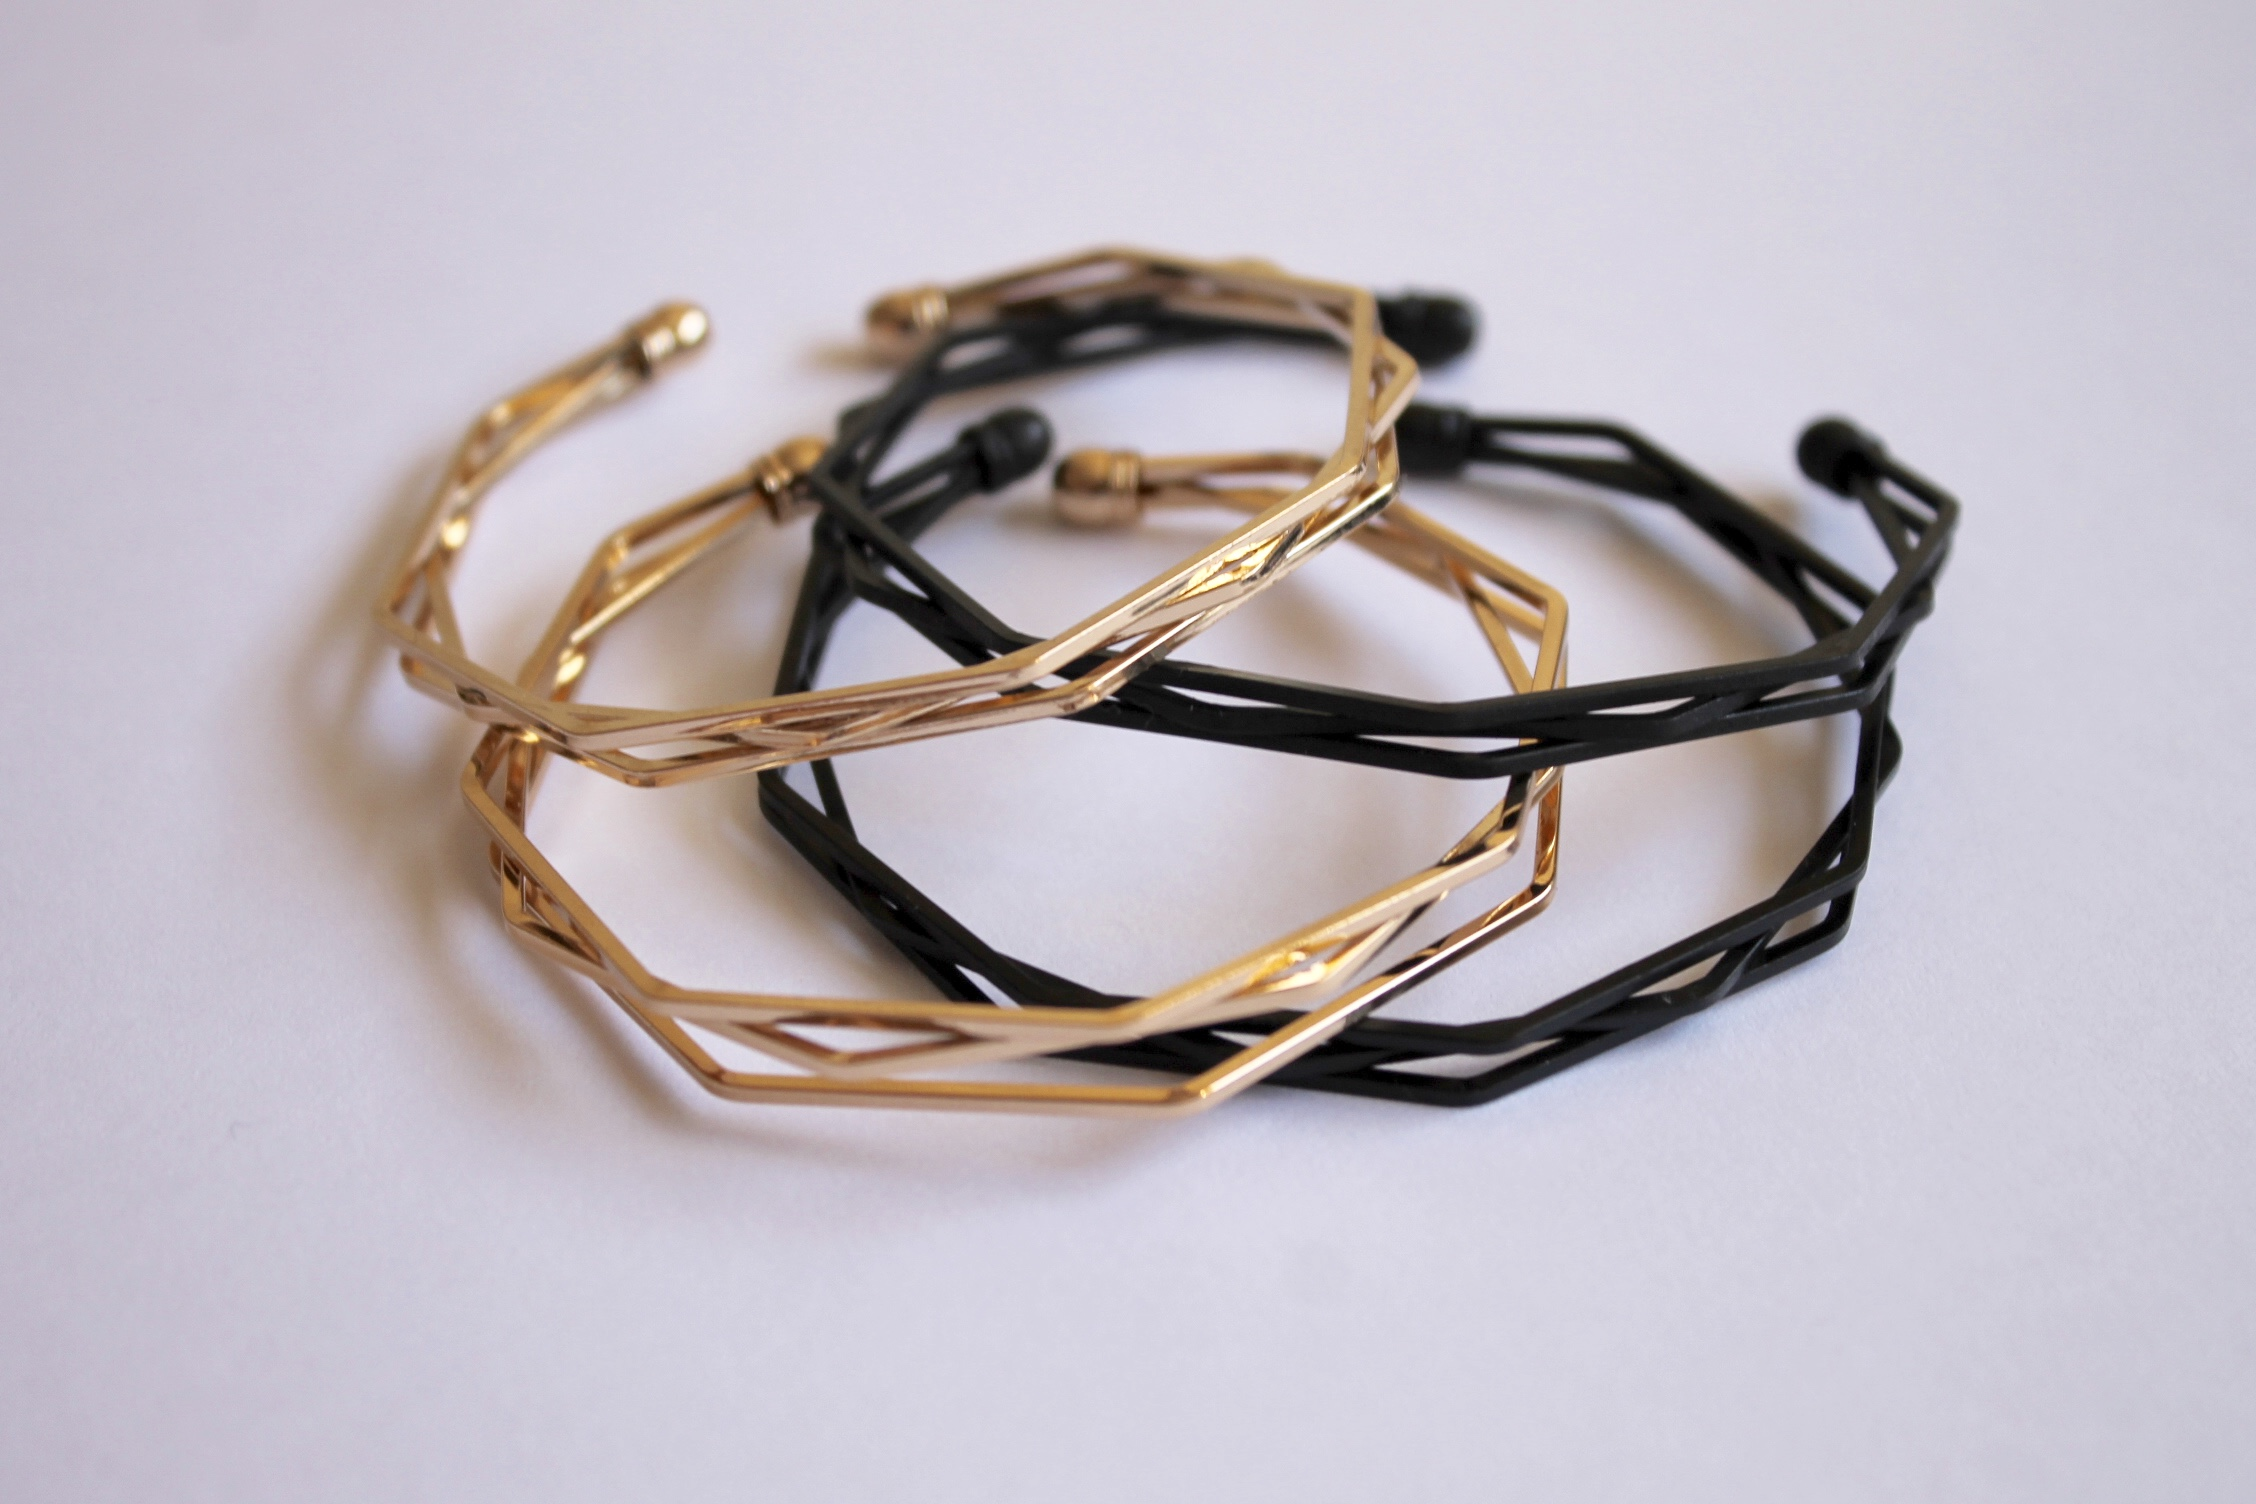 Resonance polygon bangle in black and gold